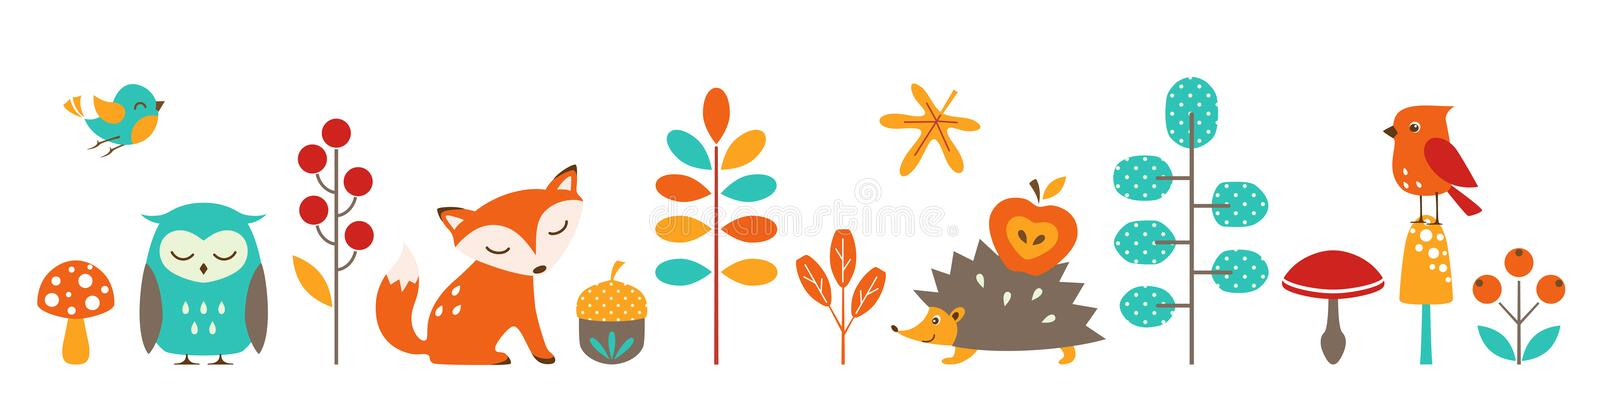 Cute autumn stock illustration